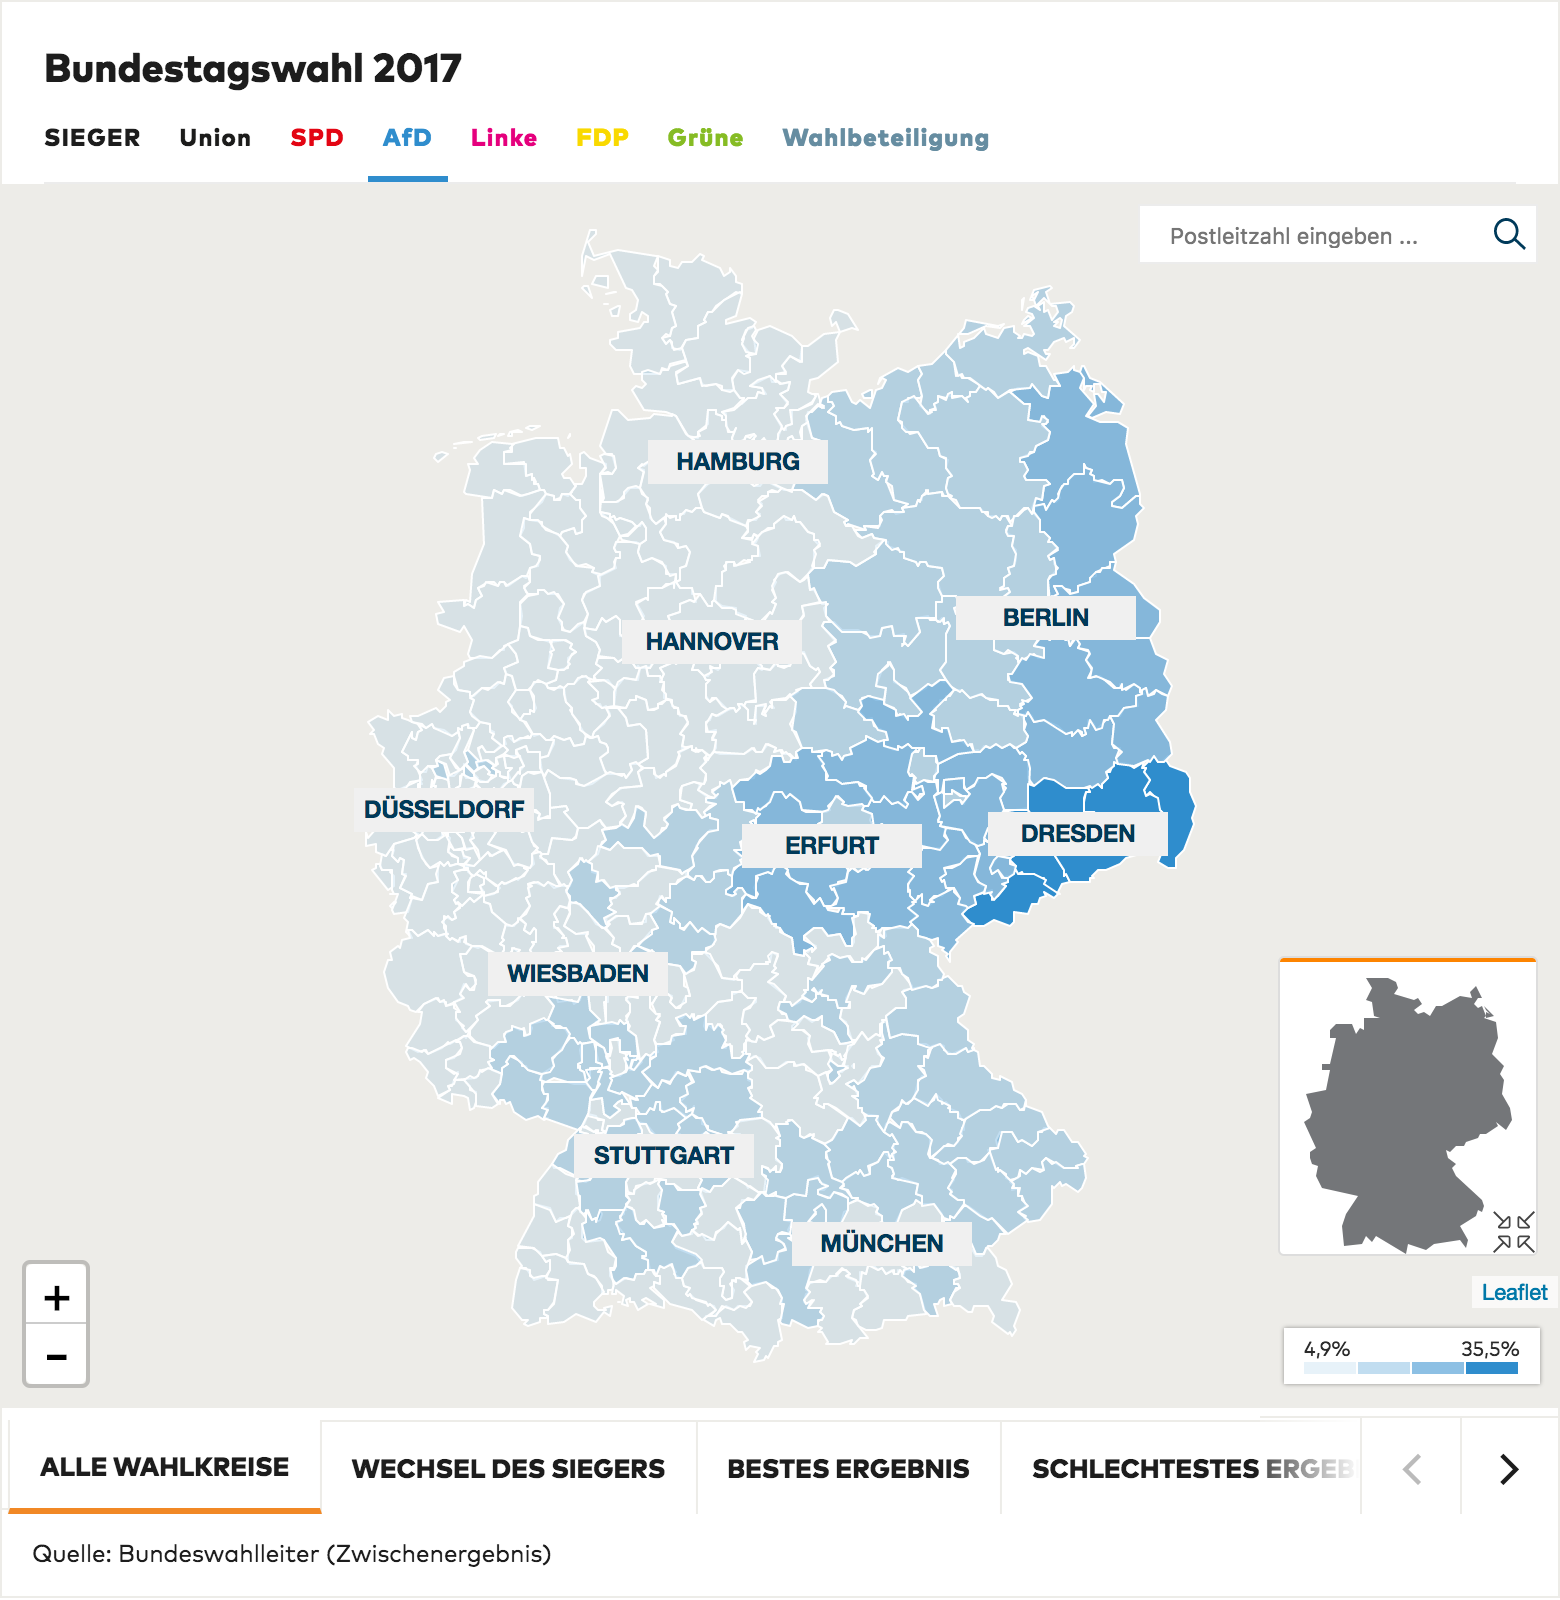 AfD support was strongest in the former East Germany